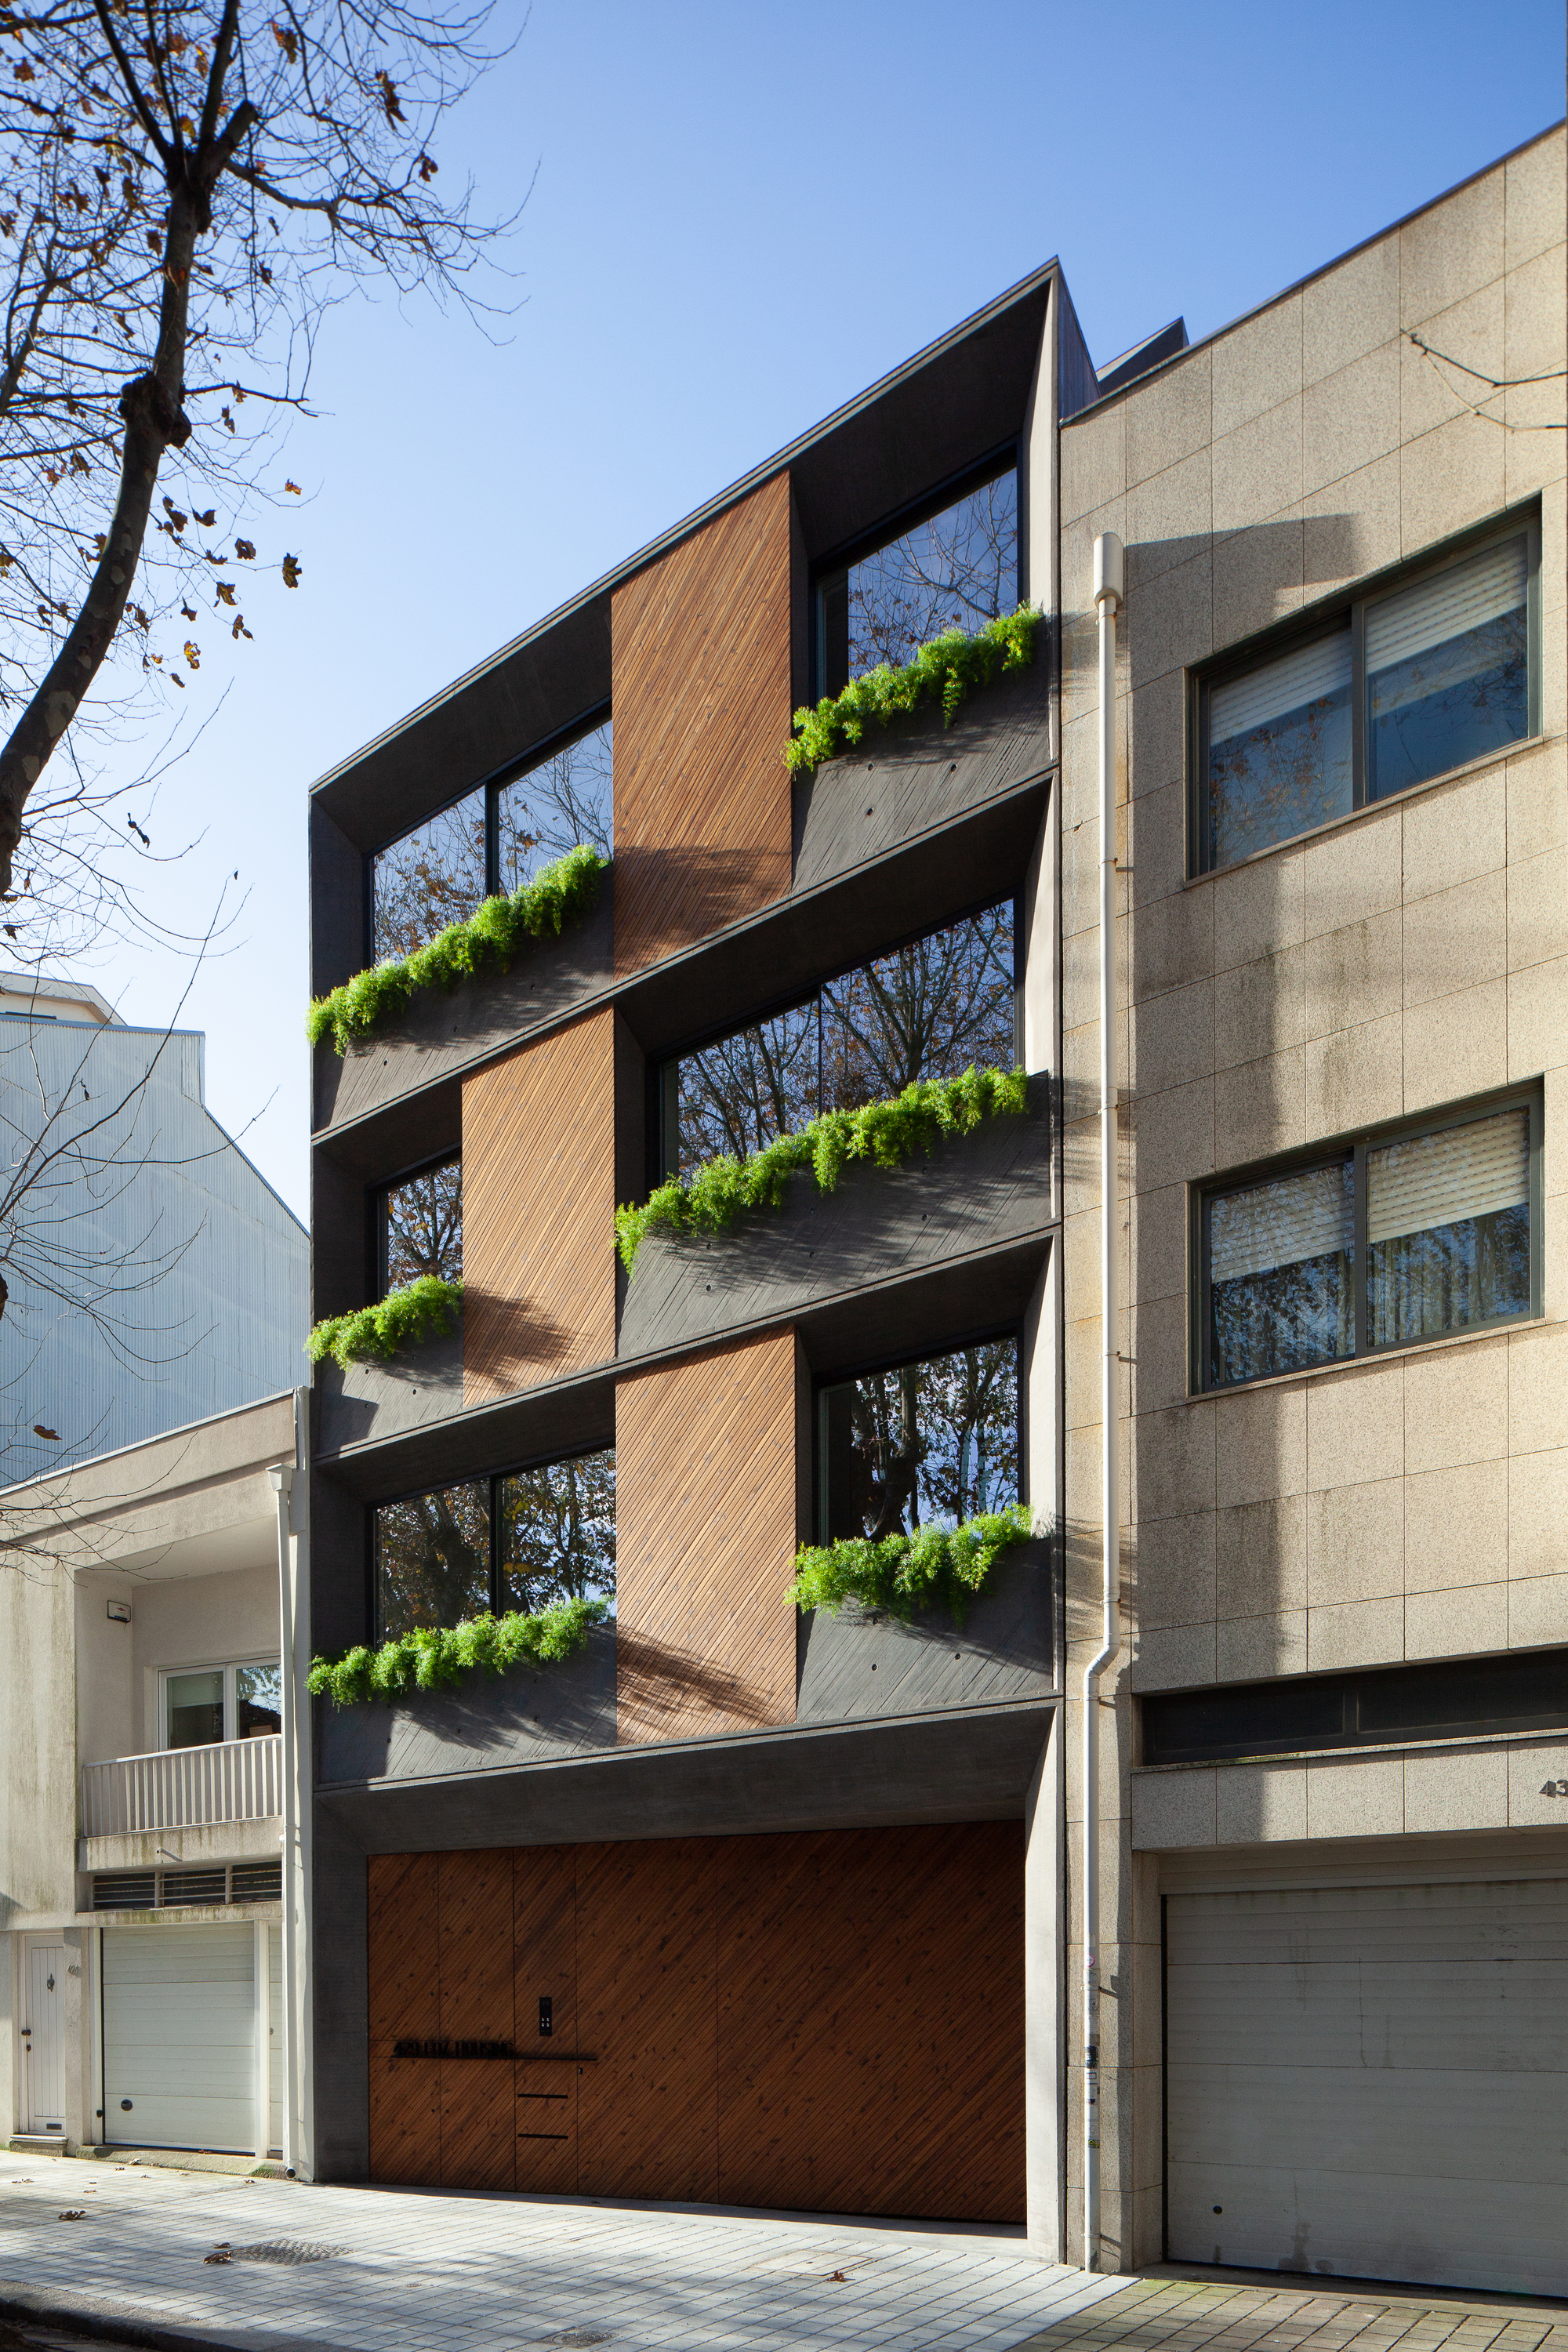 429 Foz Housing / dEMM Arquitectura